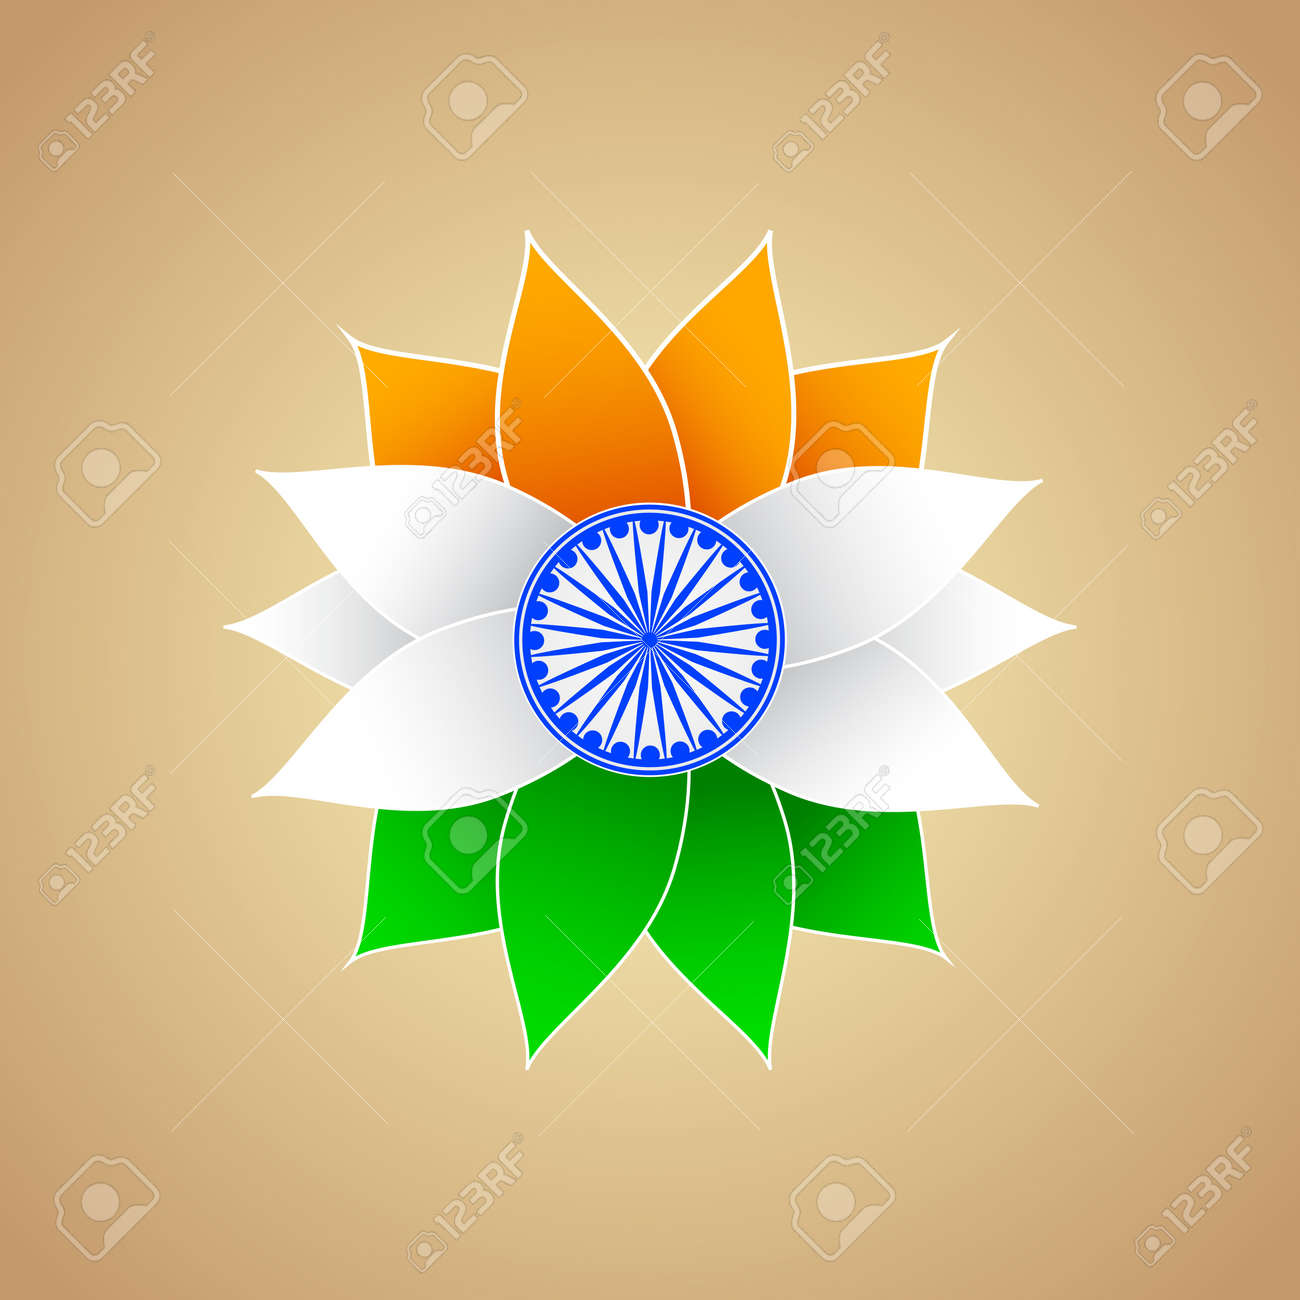 india flag stock photos u0026 pictures royalty free india flag images